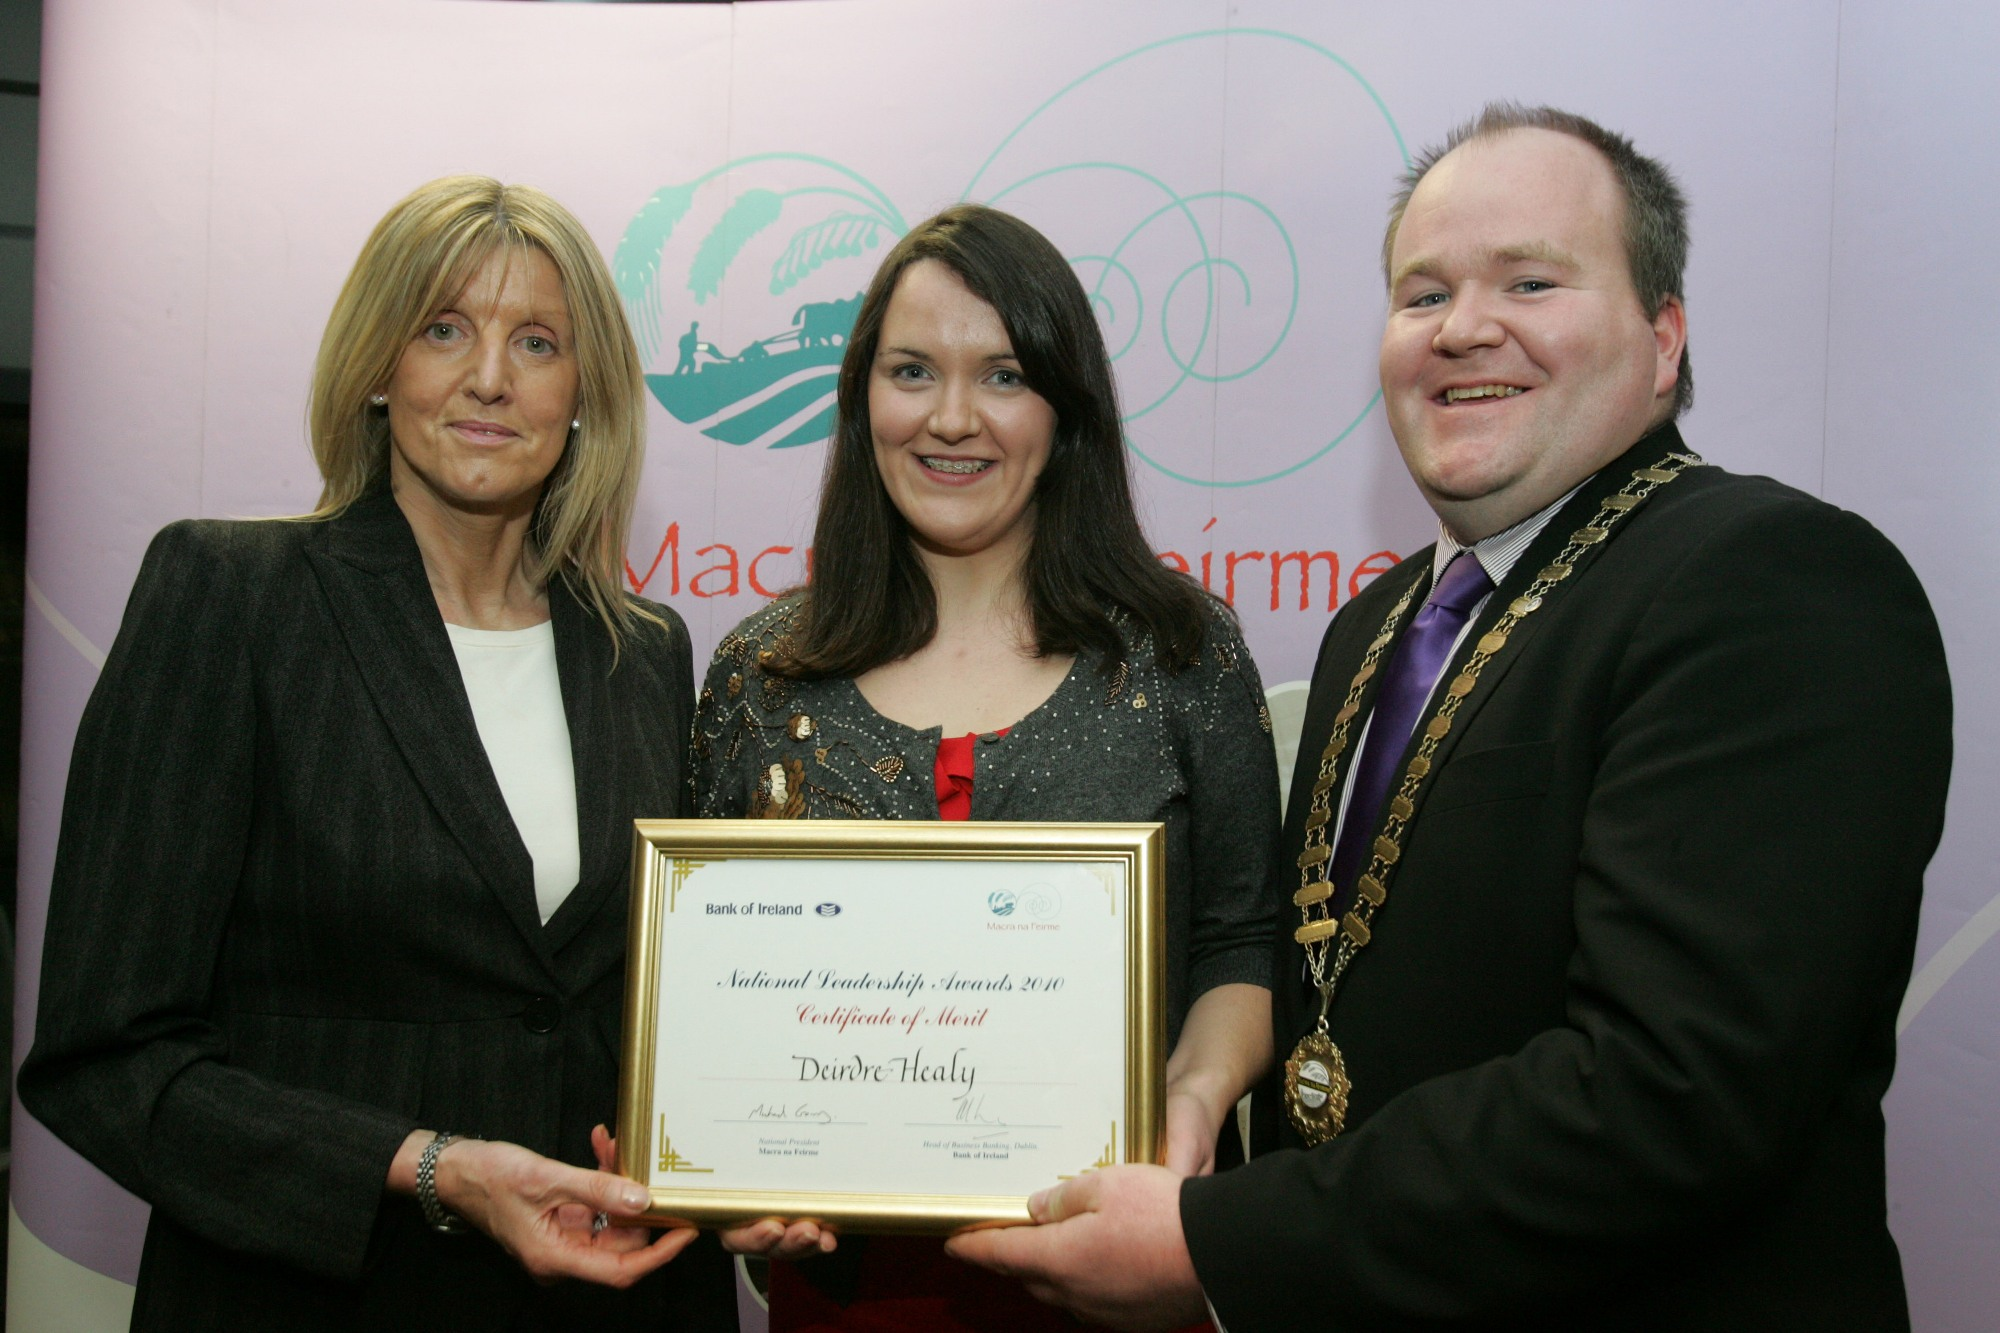 Cork Girl is runner up at National Leadership Awards